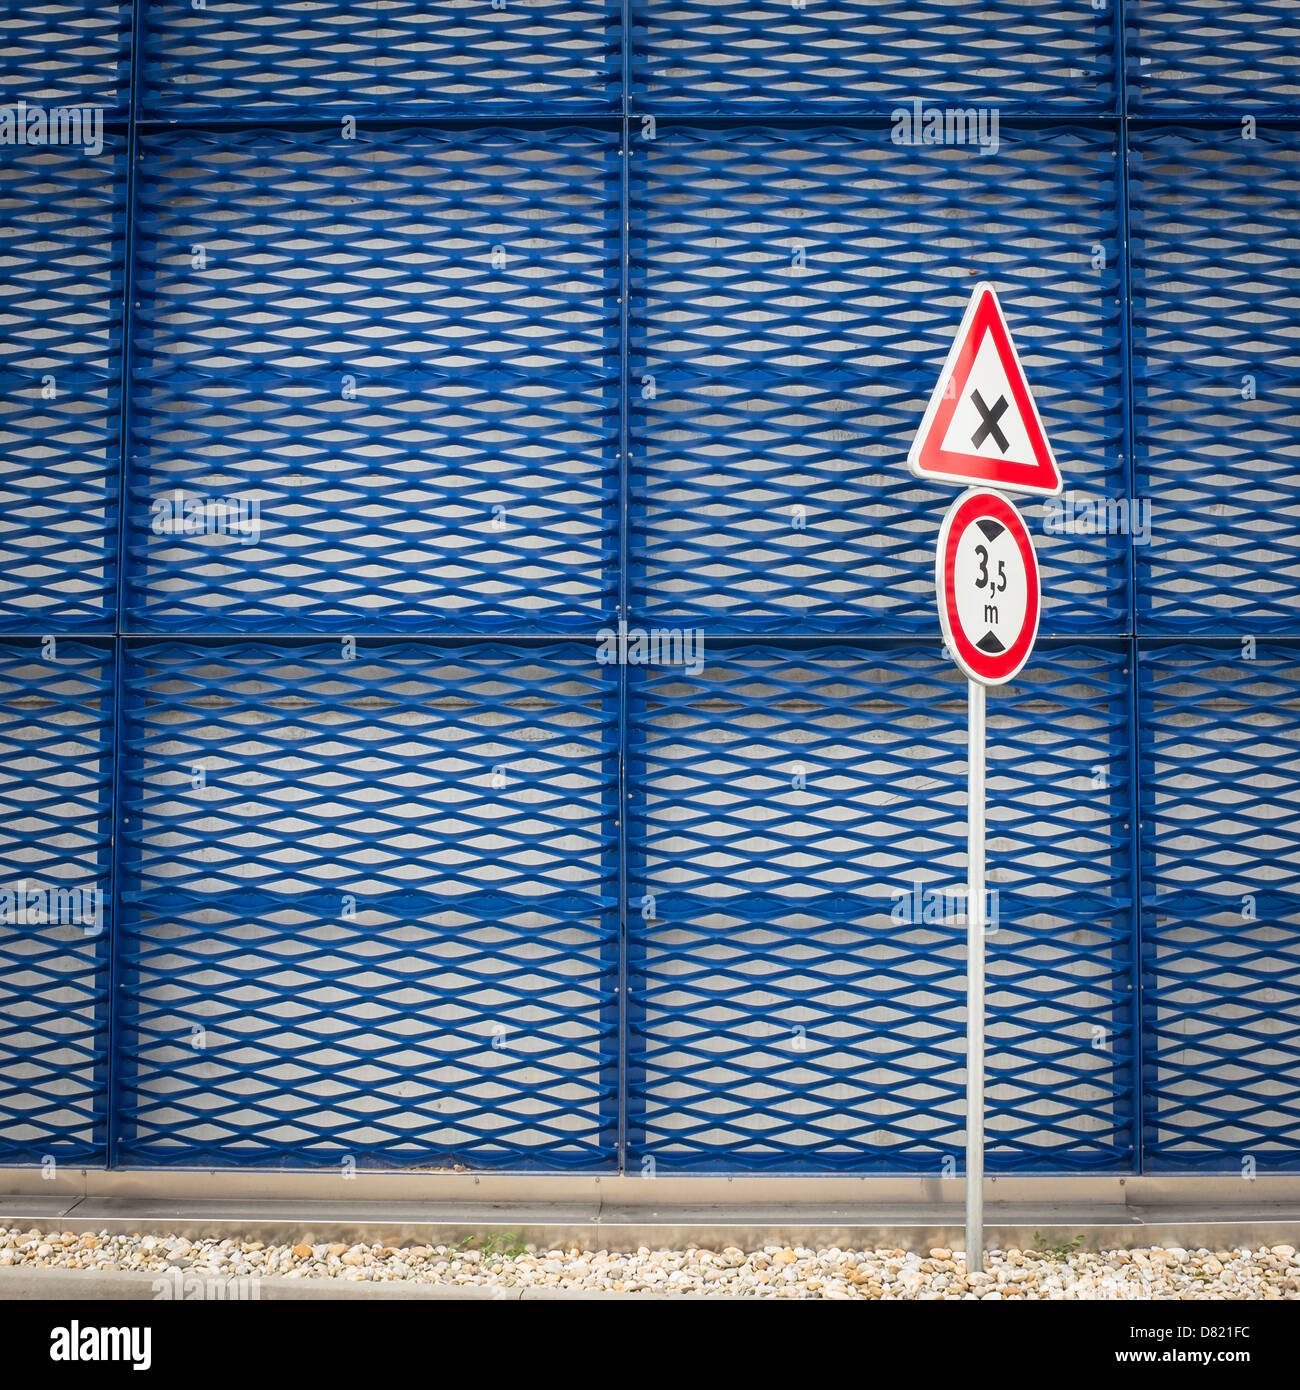 crossroad sign and blue metal facade - Stock Image